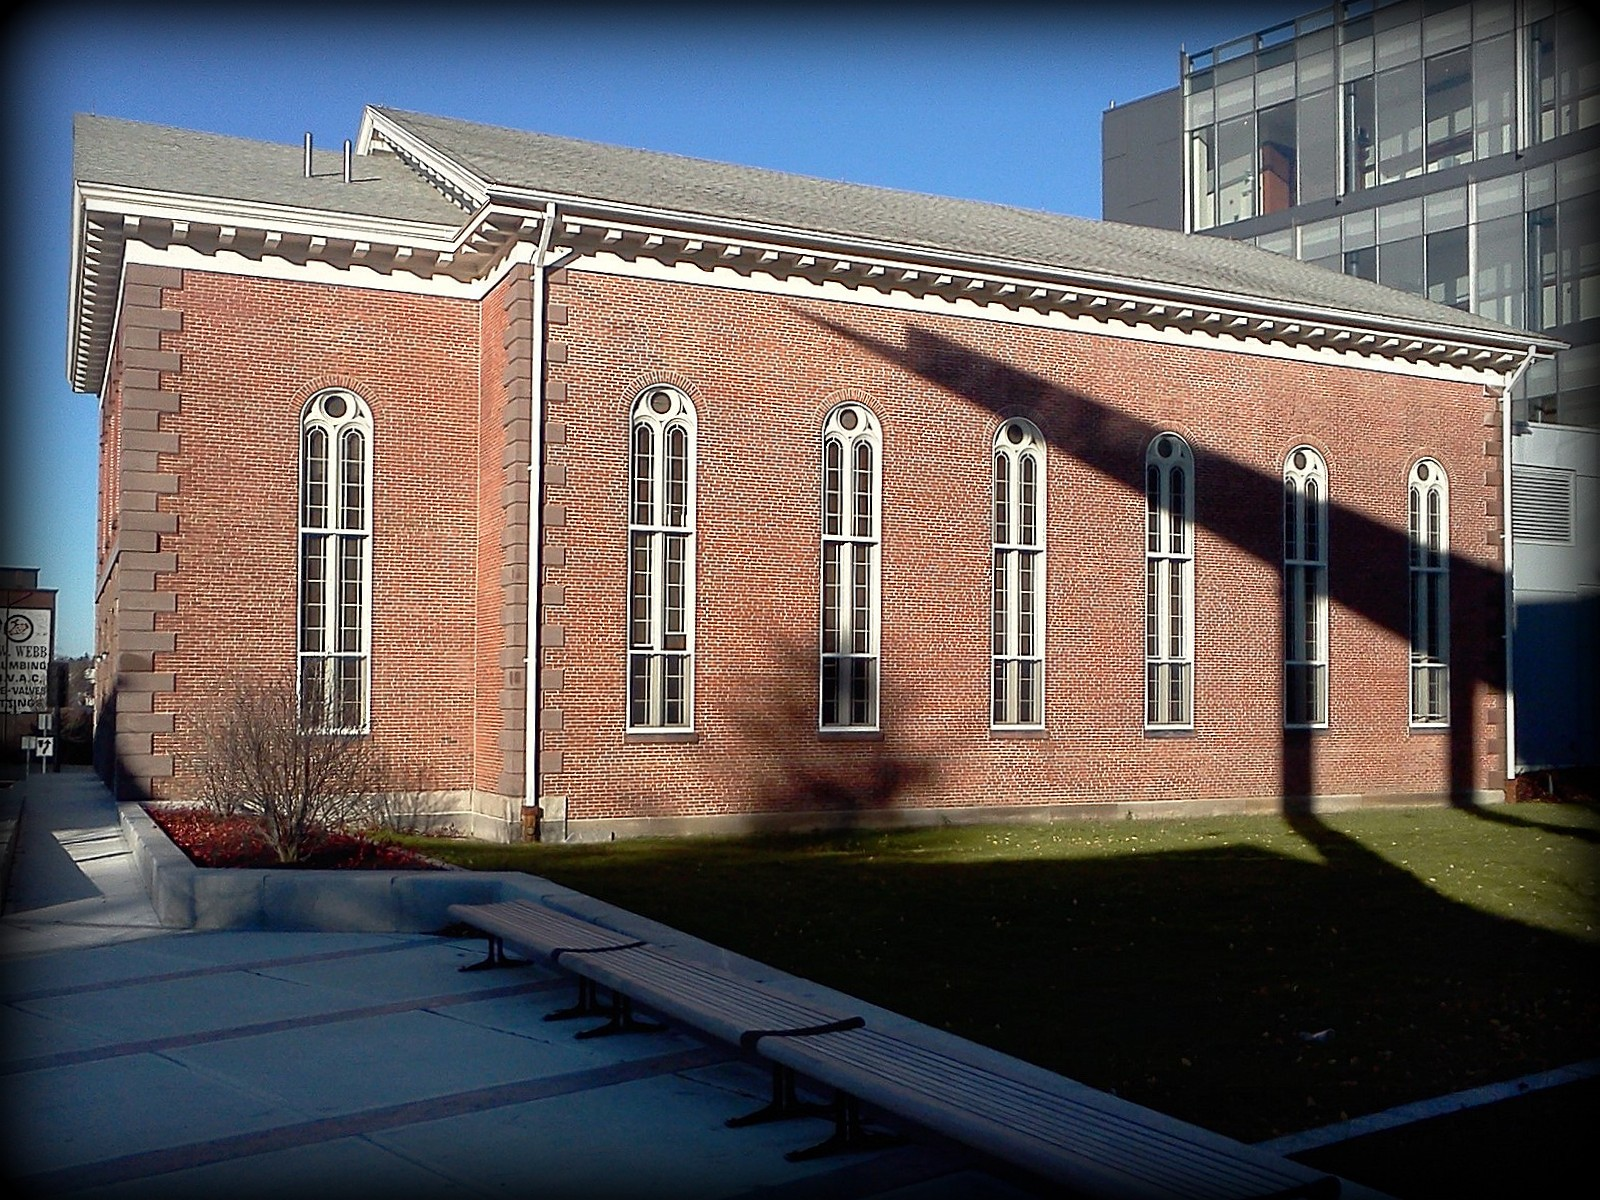 superior court, law library, shadow, salem, massachusetts,